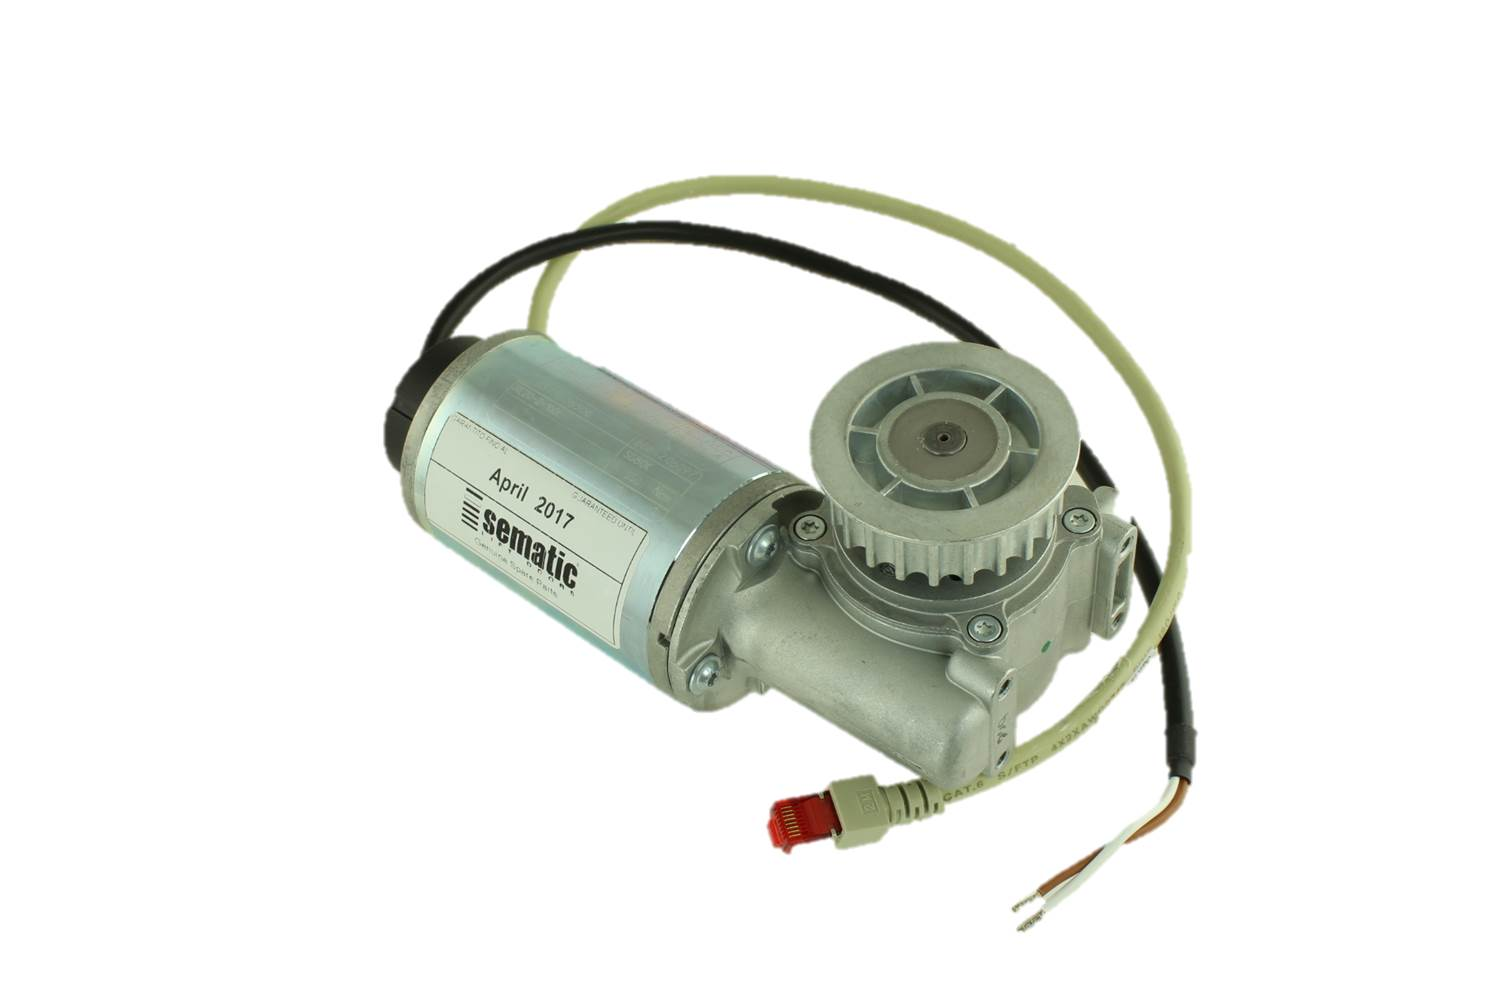 Door motor Sematic B105AANX01 500mm cable  sc 1 th 183 & Hissmekano - Door motor Sematic B105AANX01 500mm cable